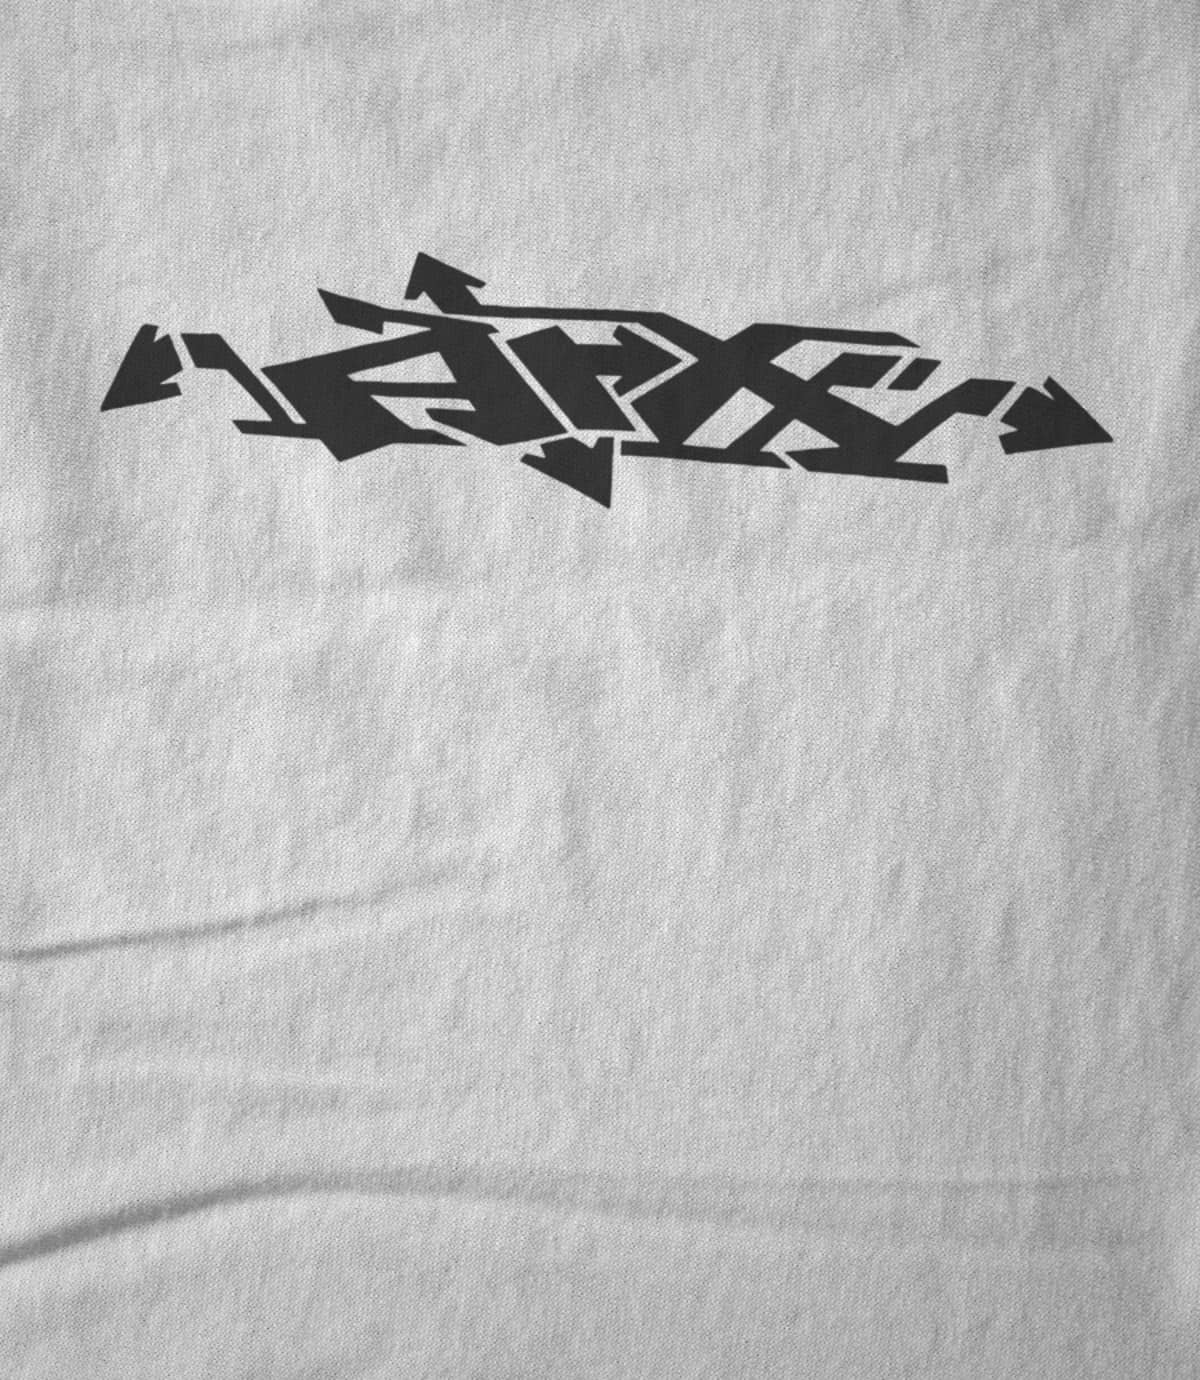 Architecture recordings arx graff   white tee 1596460597